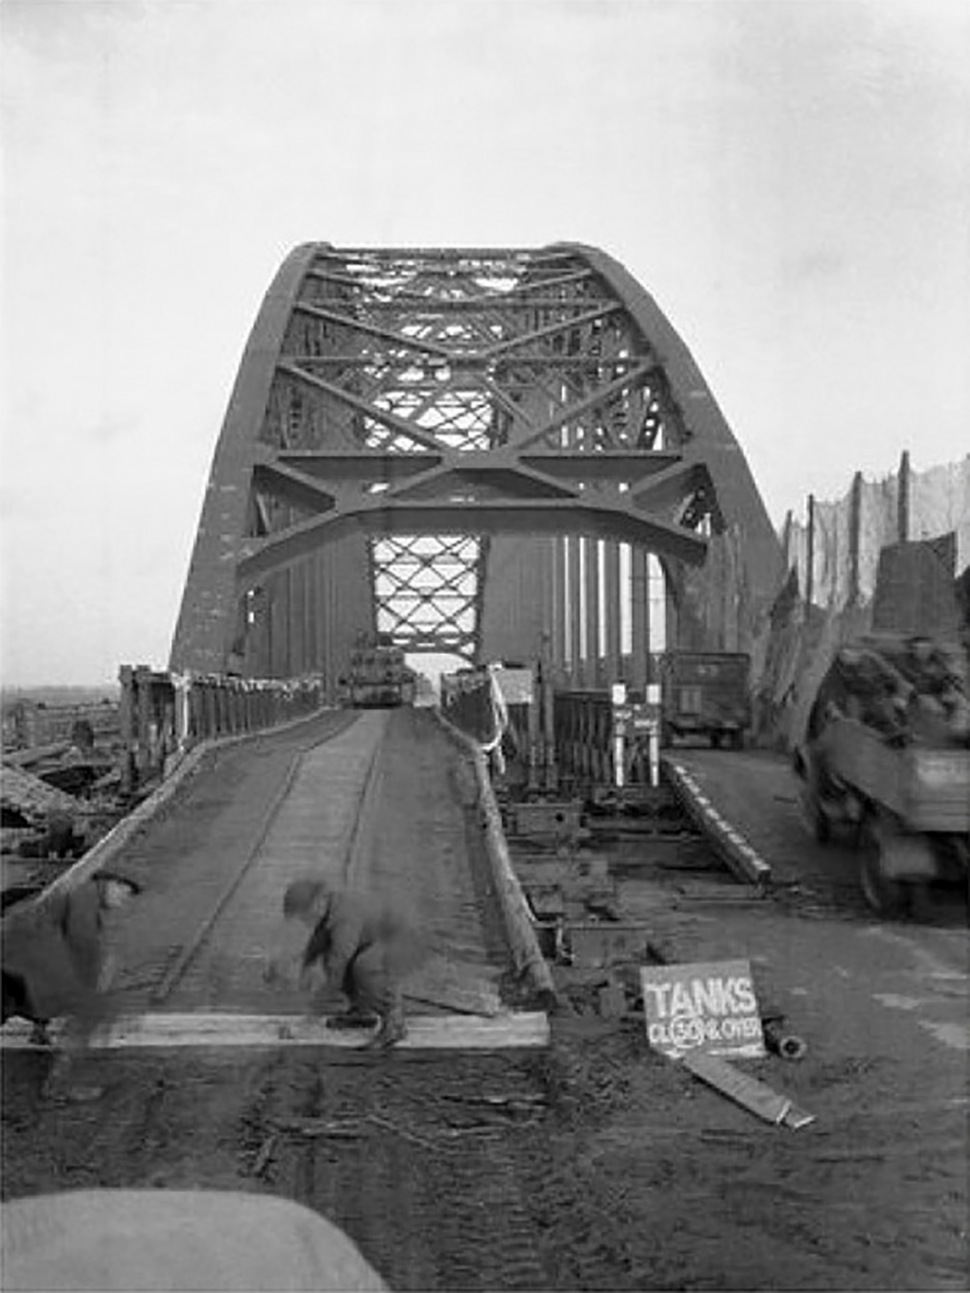 190319-road-bridge-nijmegen-stabilized-with-bailey-bridges-1944